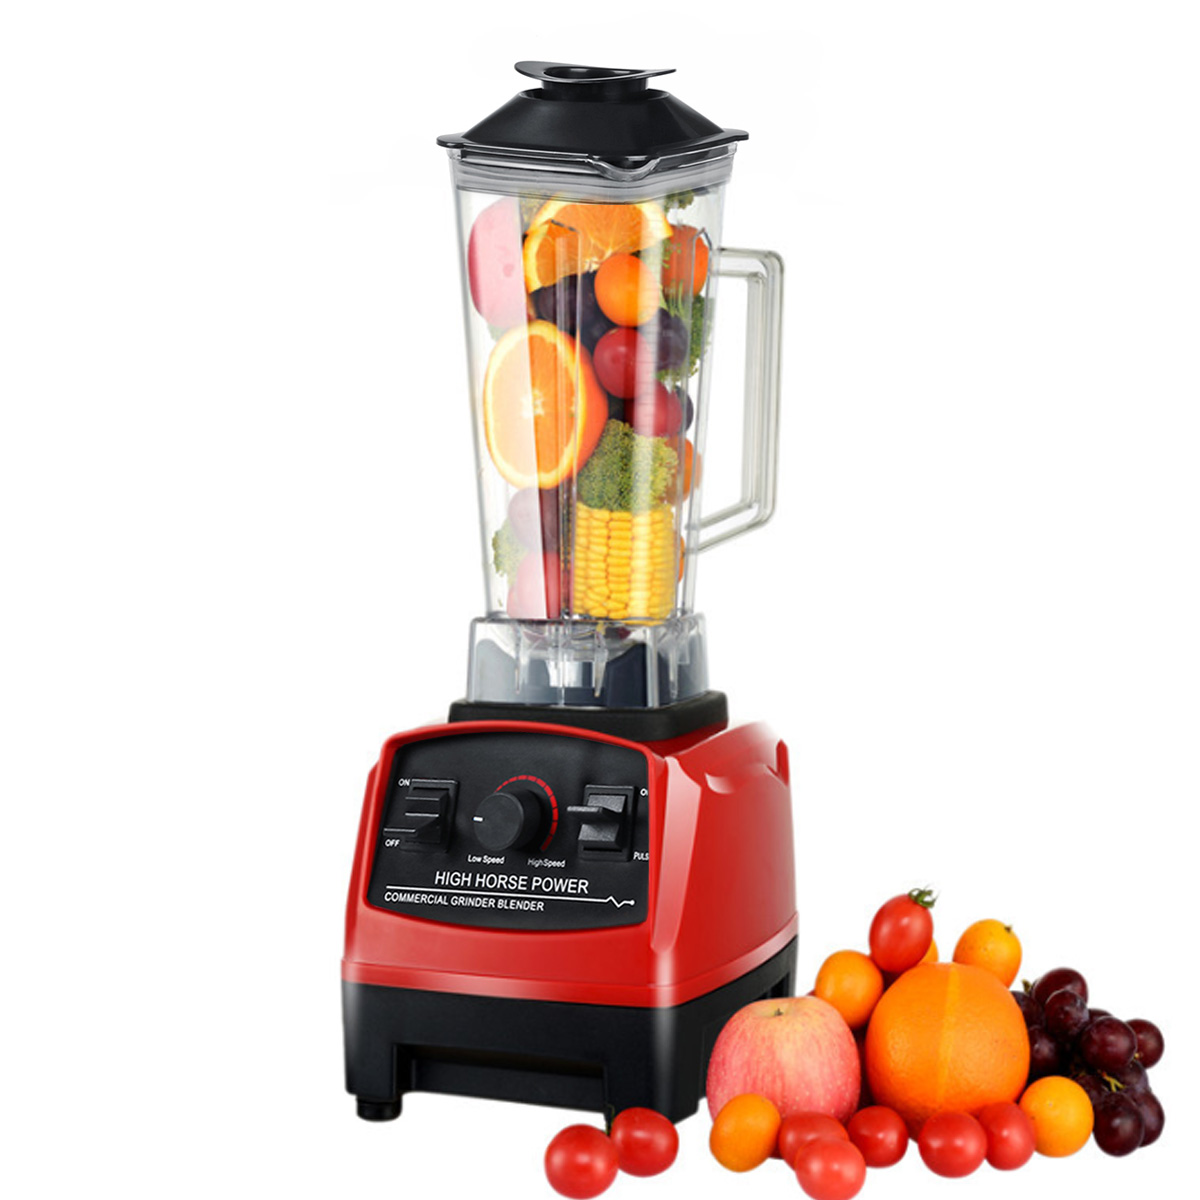 2L 1500W Commercial Grade Food Processor For Blenders Mixer Heavy Duty Fruit Juicer Food Ice Crusher Smoothies Adjustable Speed